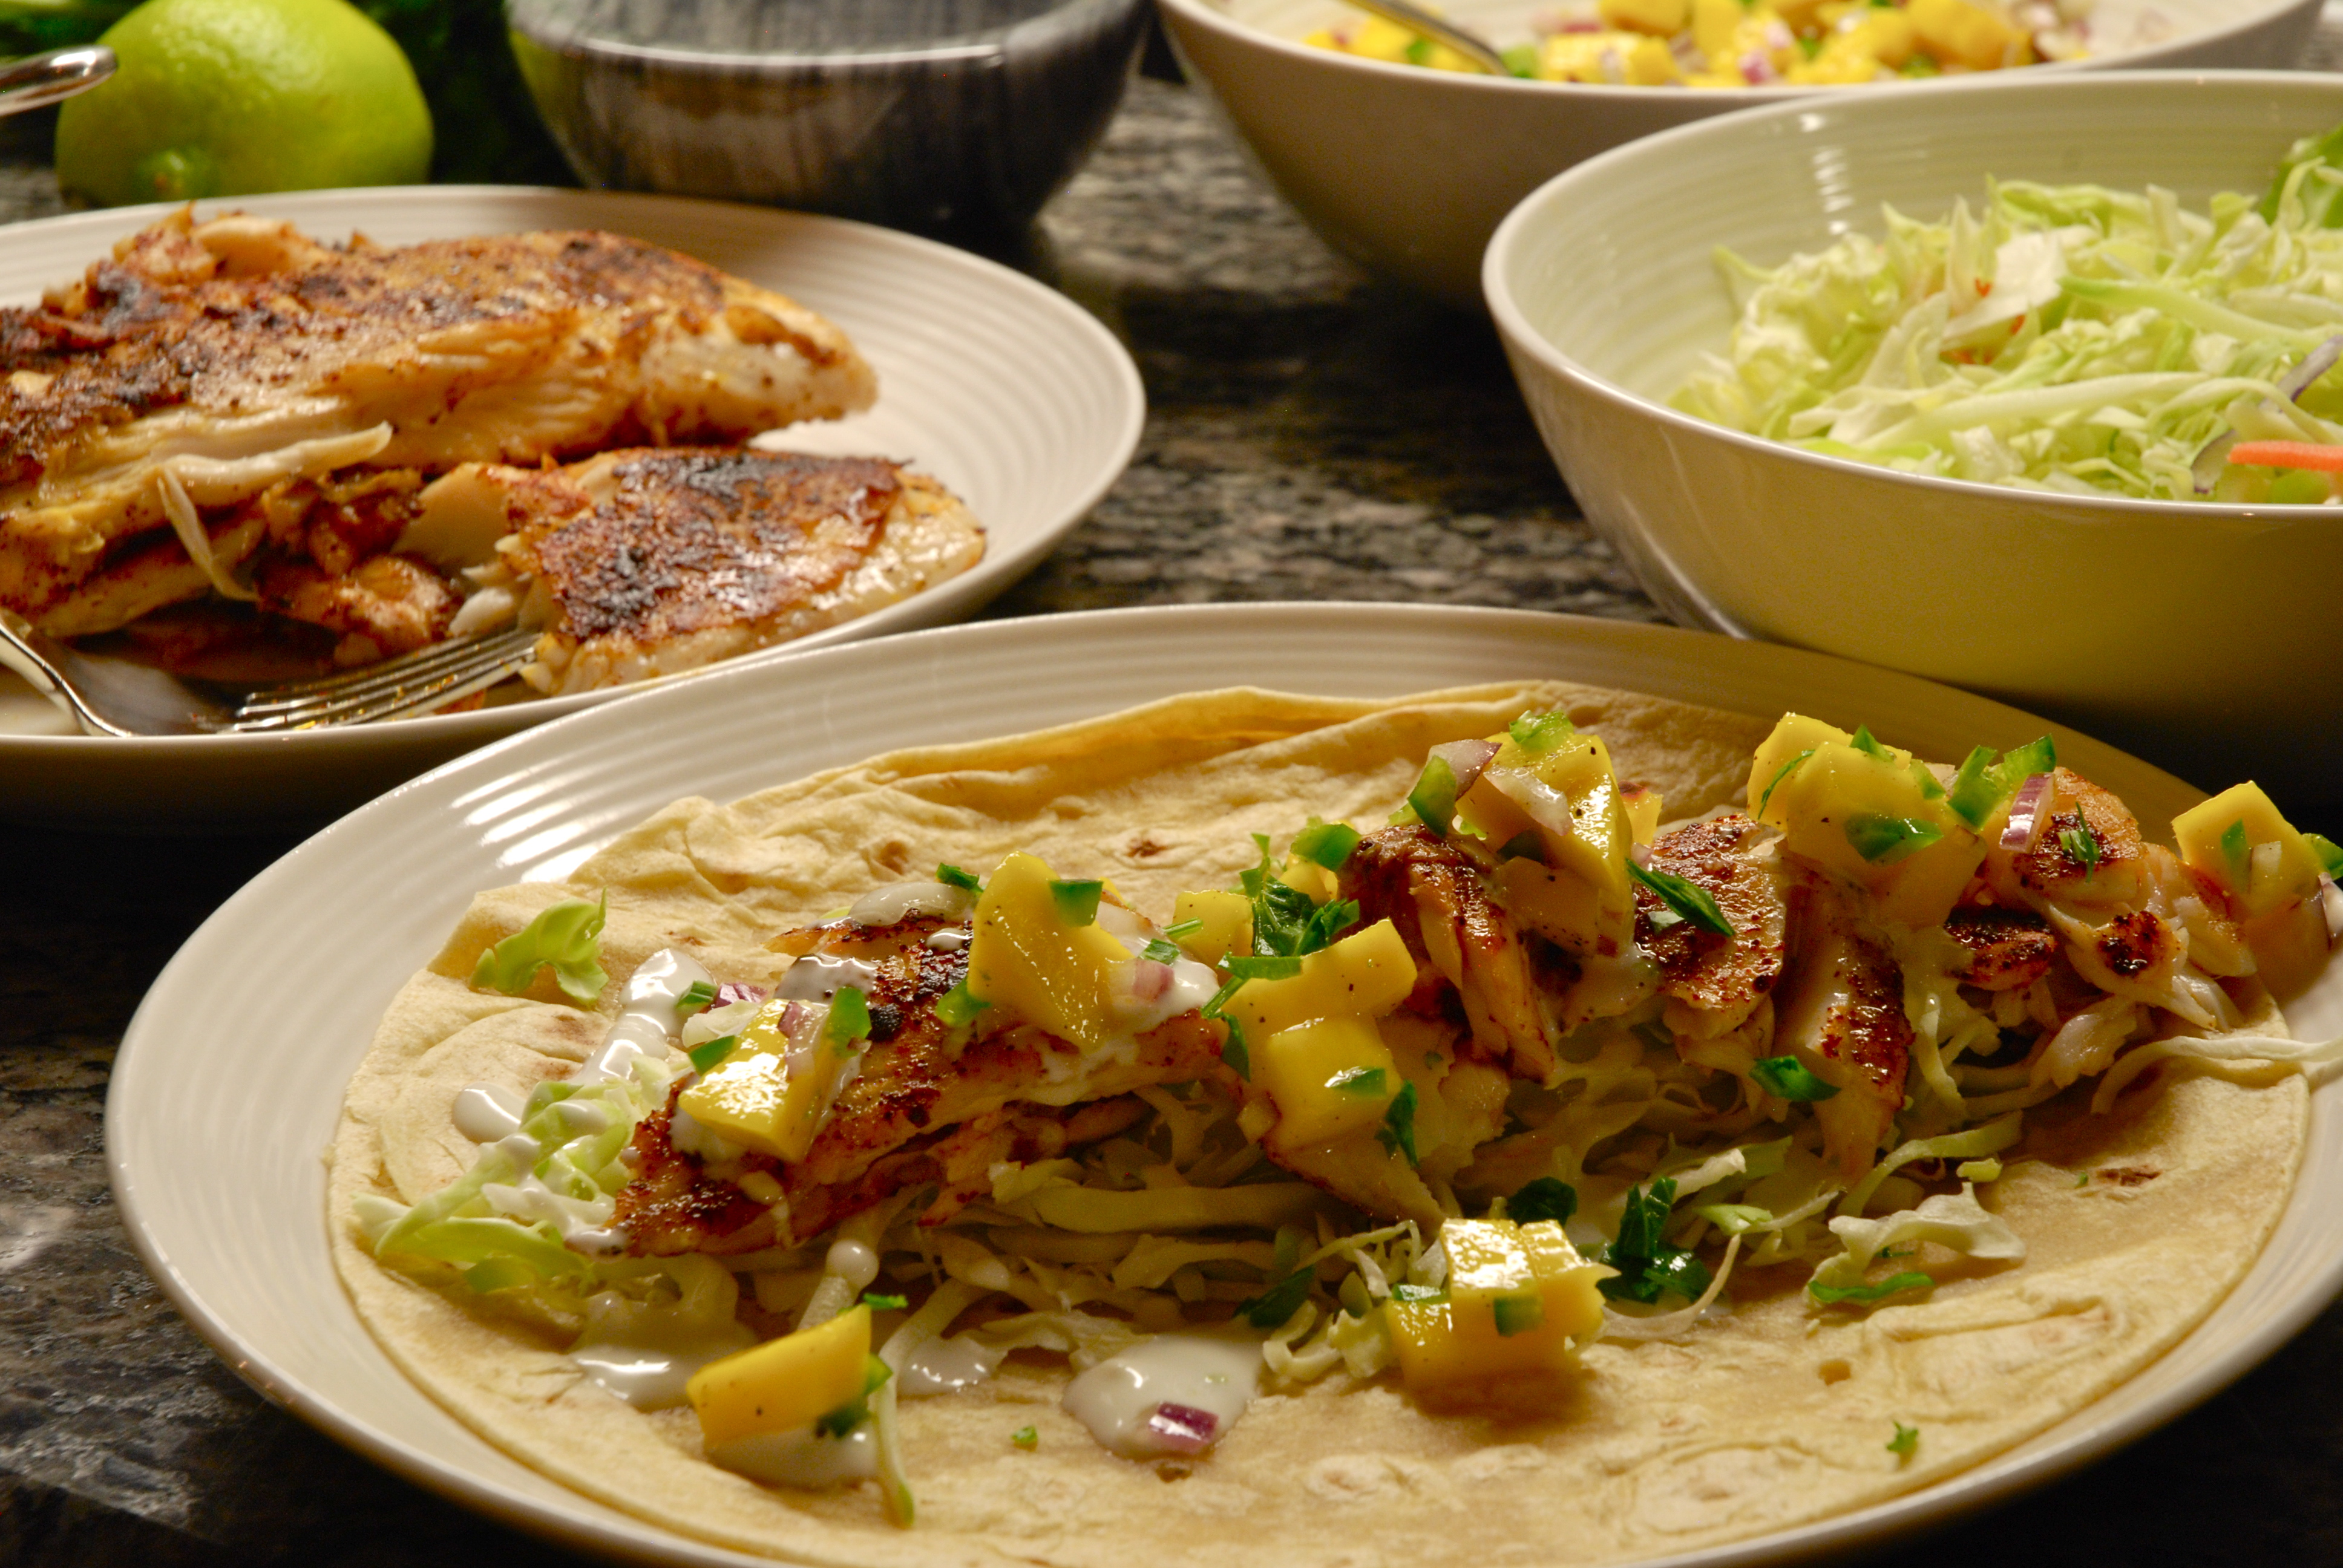 How to quickie meals tilapia tacos how to eat for Tilapia fish tacos